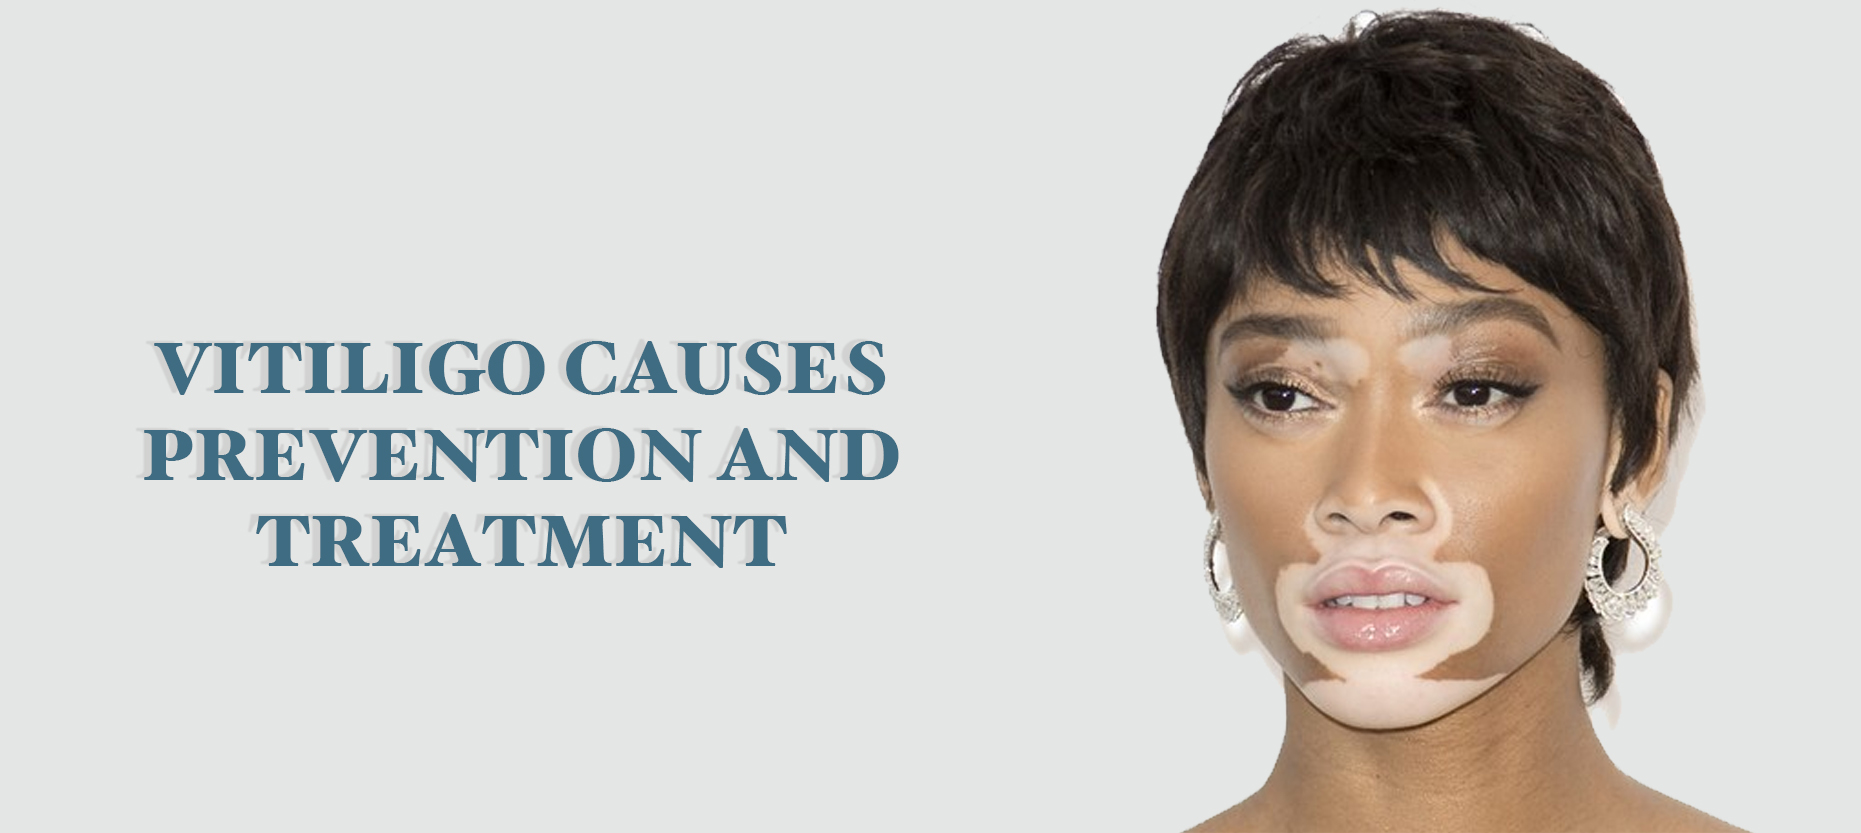 Vitiligo: Causes, Prevention & Treatment